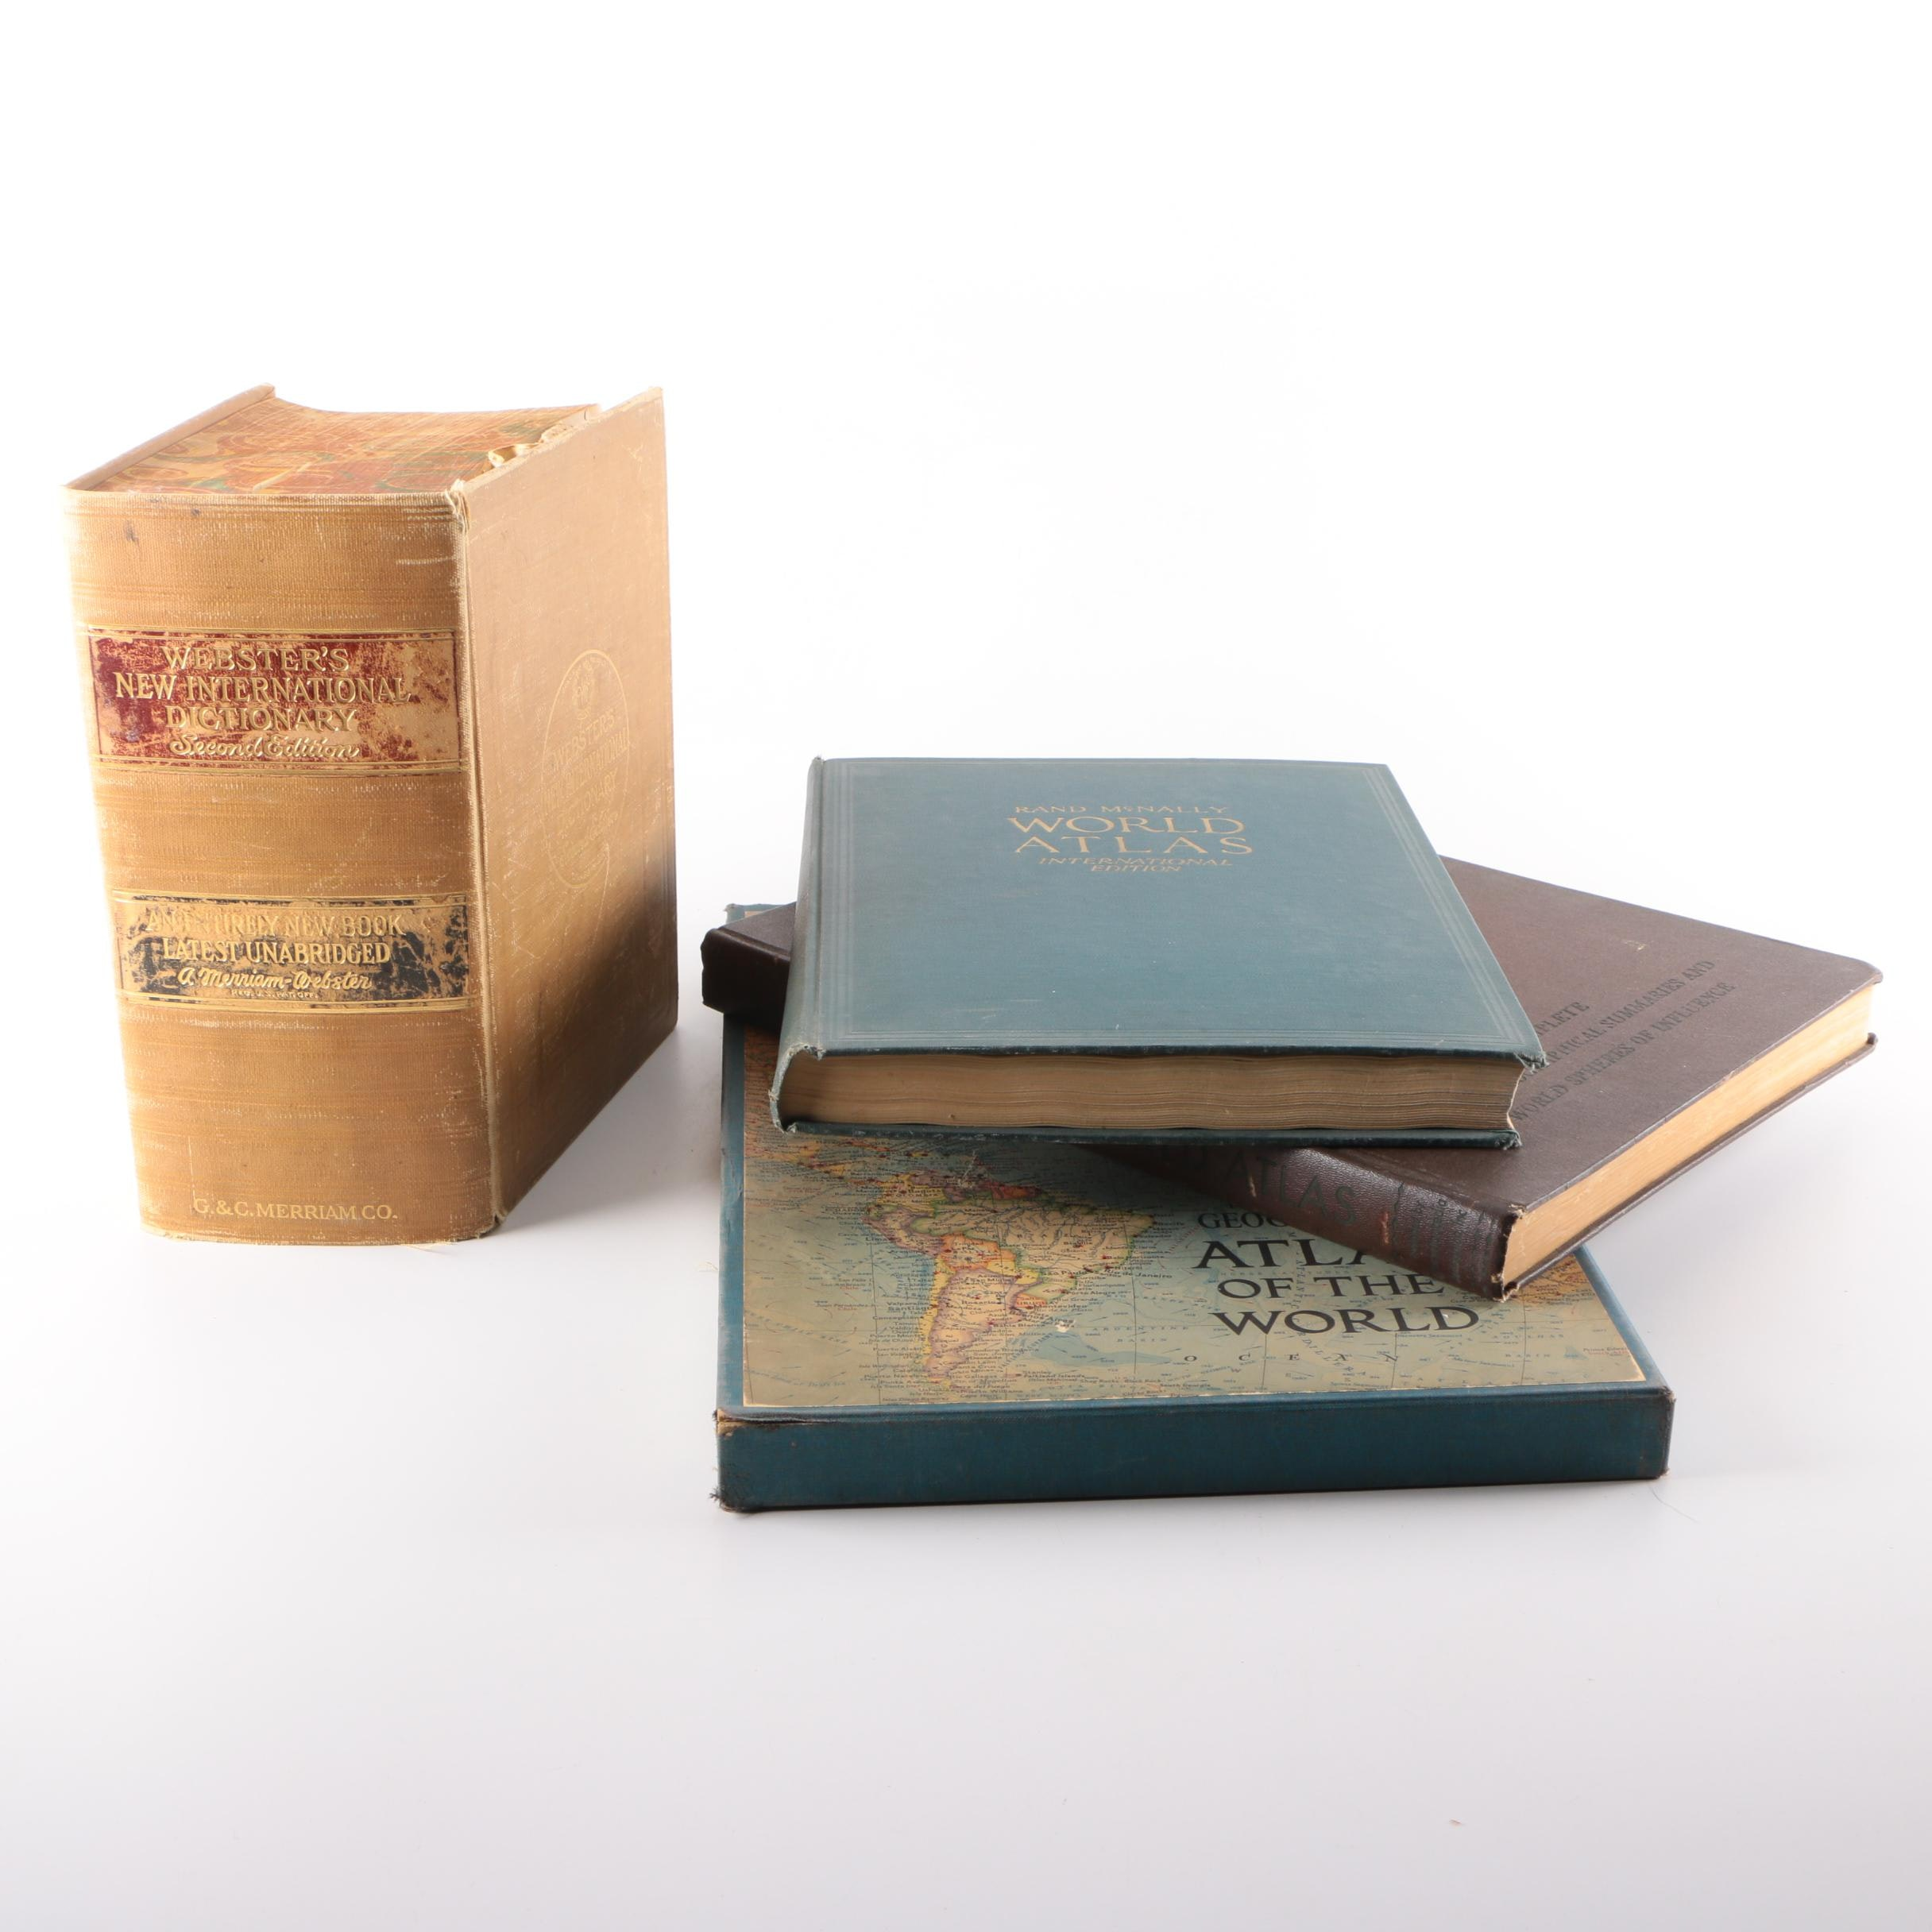 Atlases and Dictionary